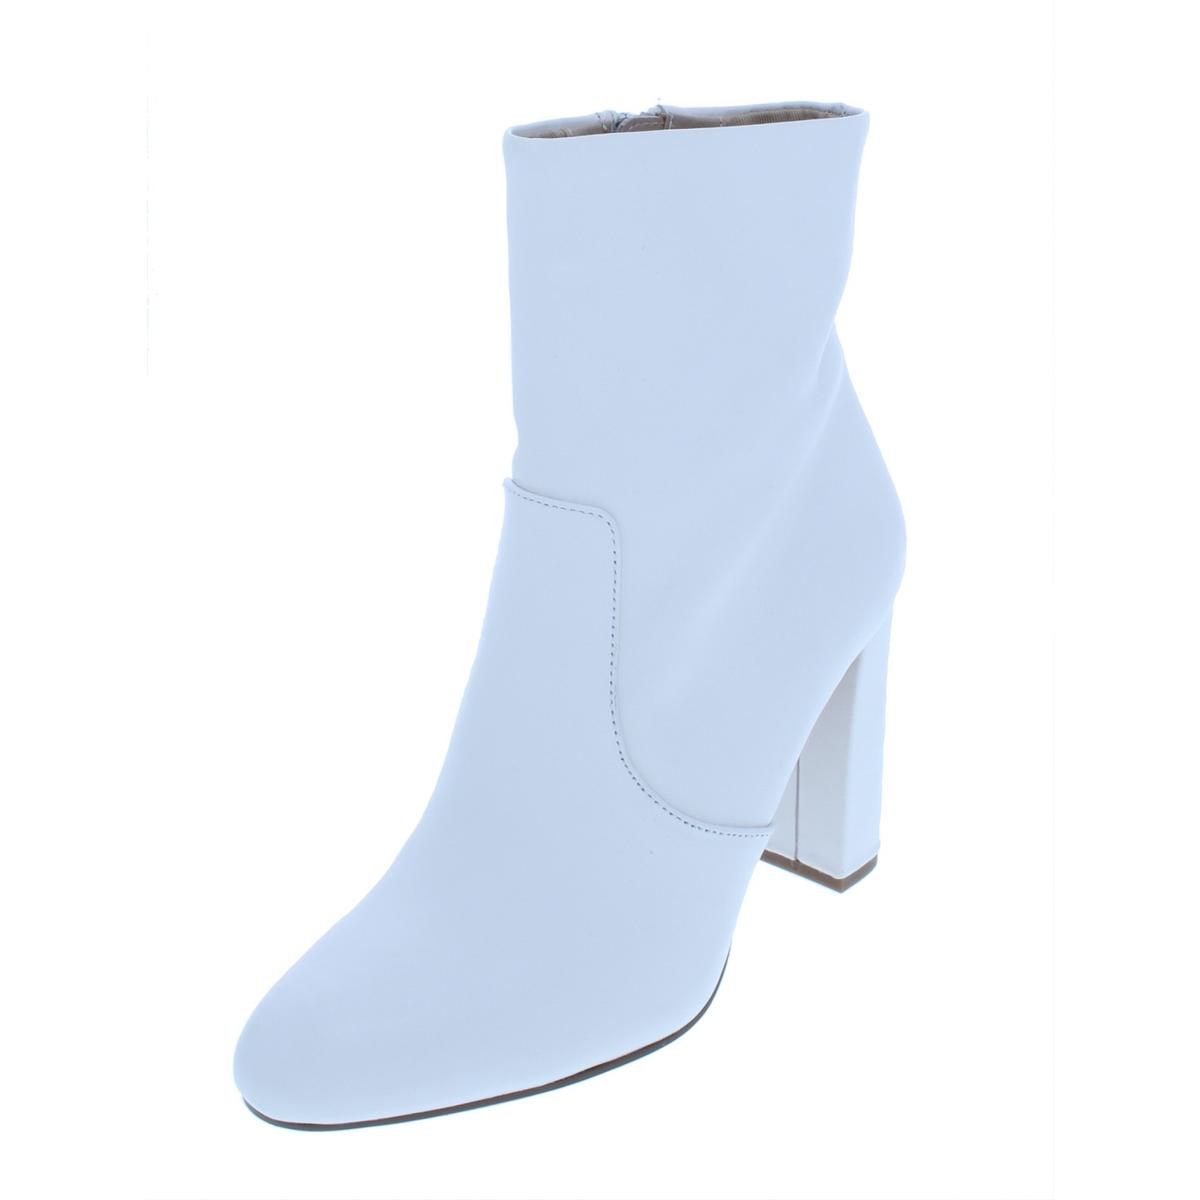 8ce380424ae Details about Steve Madden Womens Editor Leather Block Heel Almond Toe  Booties Shoes BHFO 7044